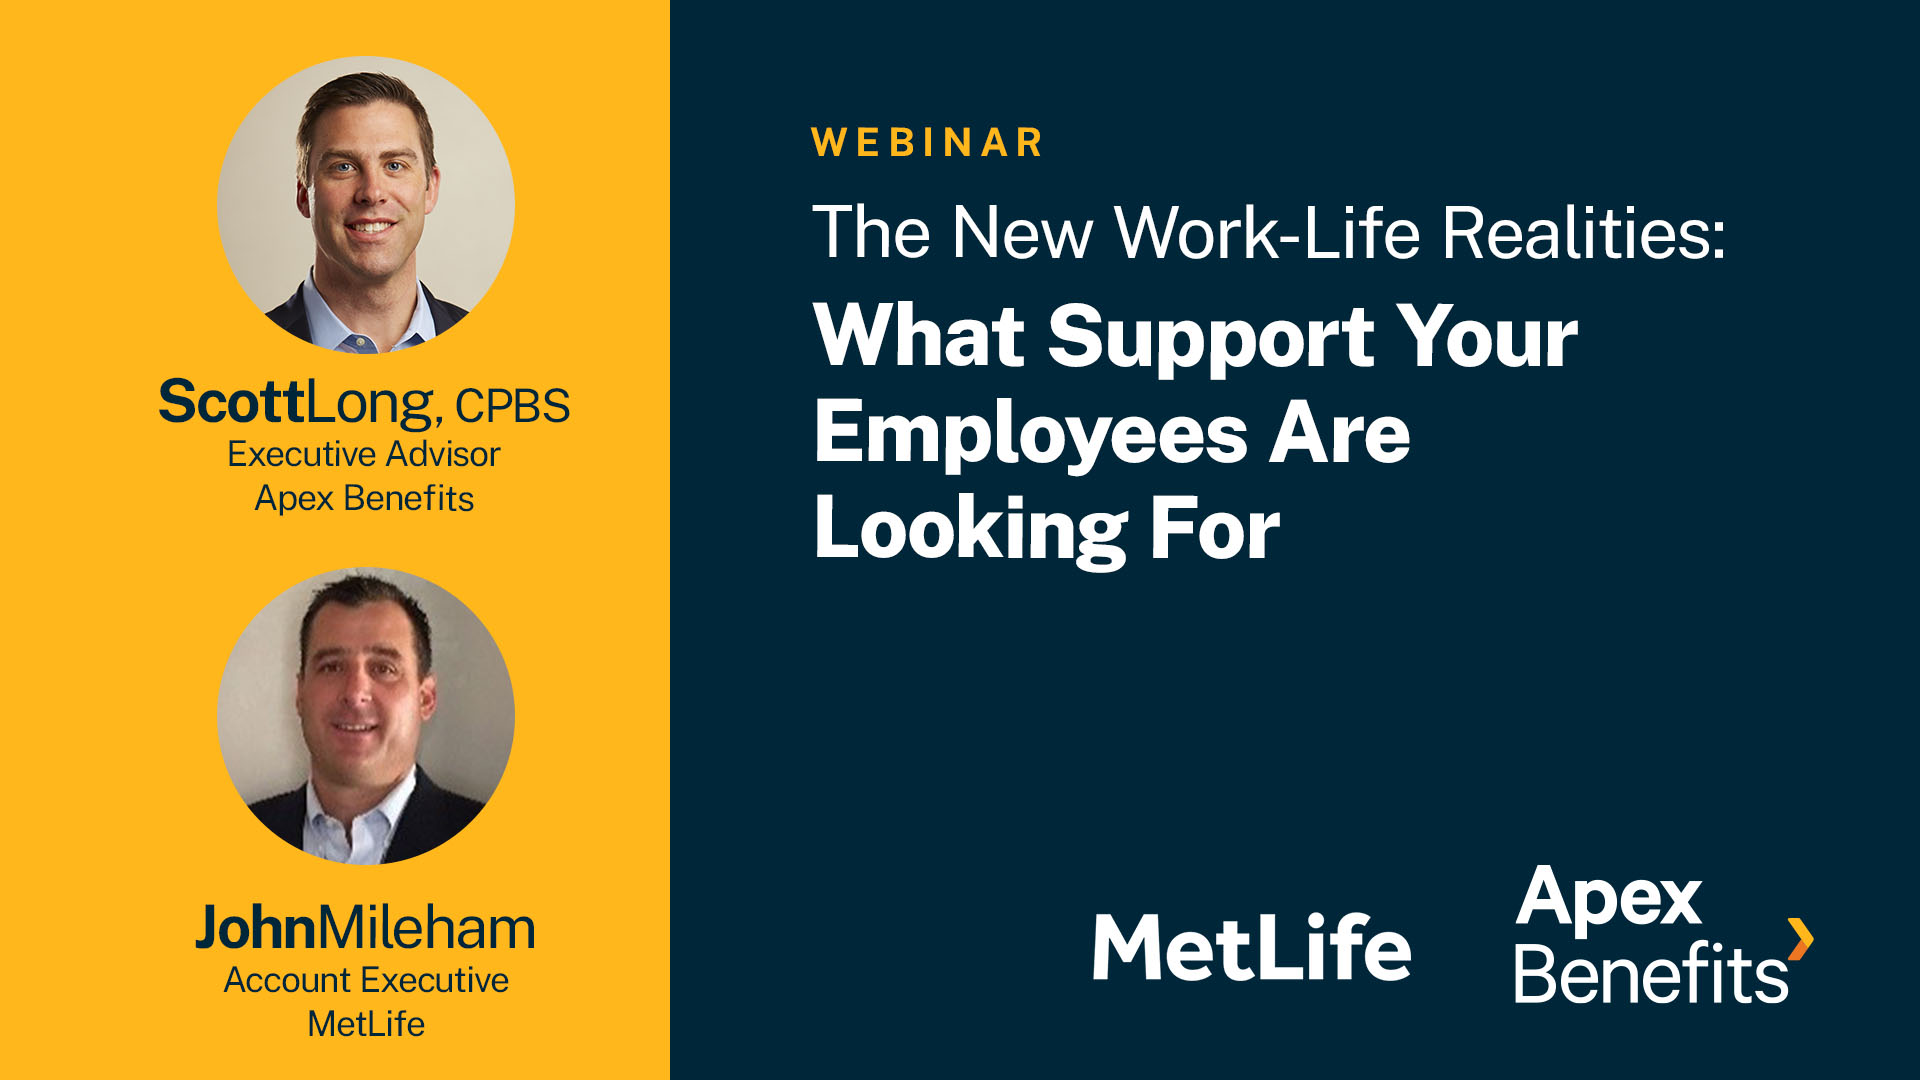 The New Work-Life Realities: What Support Your Employees Are Looking For